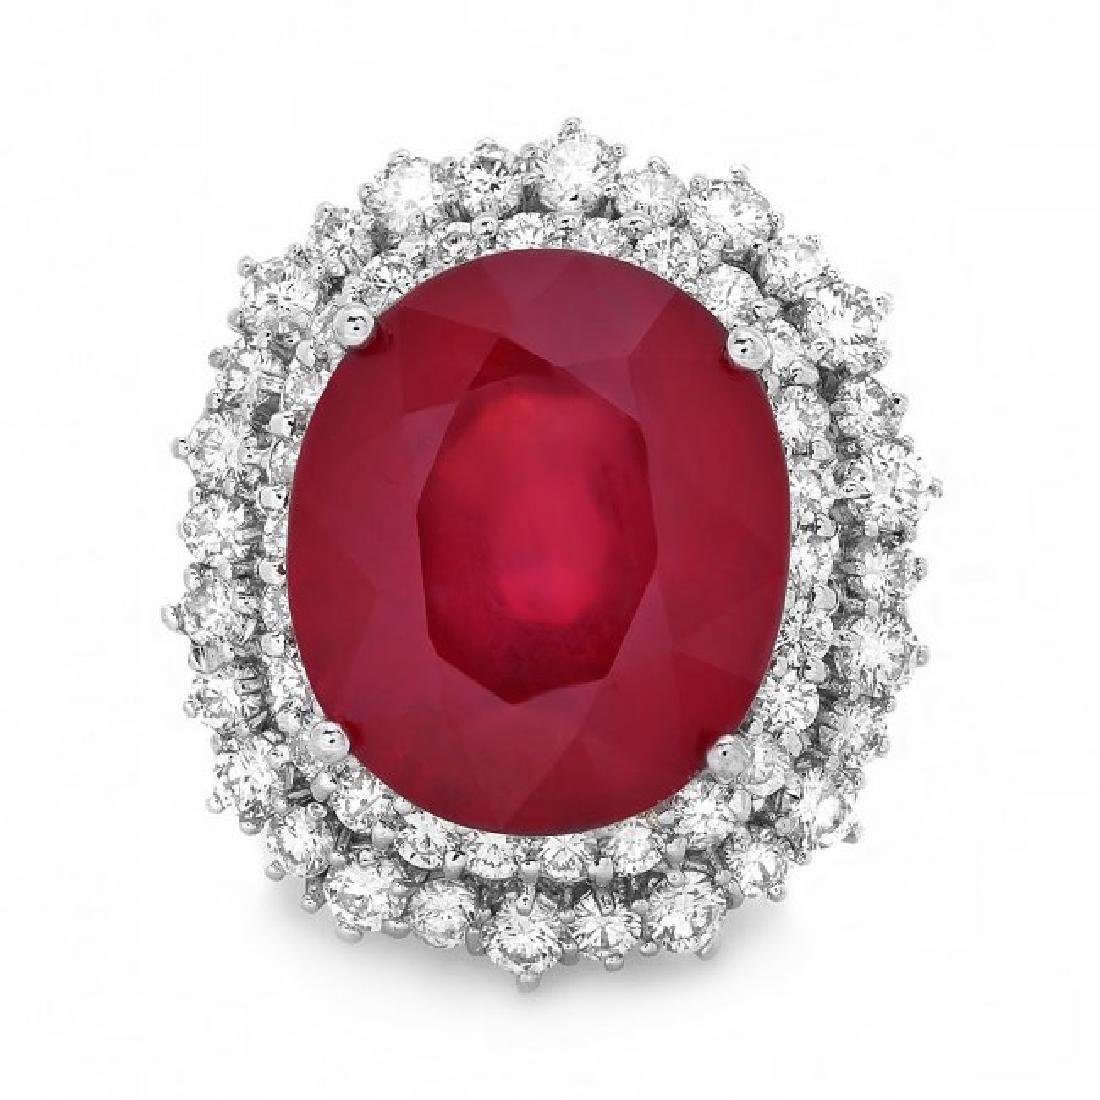 14k White Gold 18.00ct Ruby 2.00ct Diamond Ring - 2